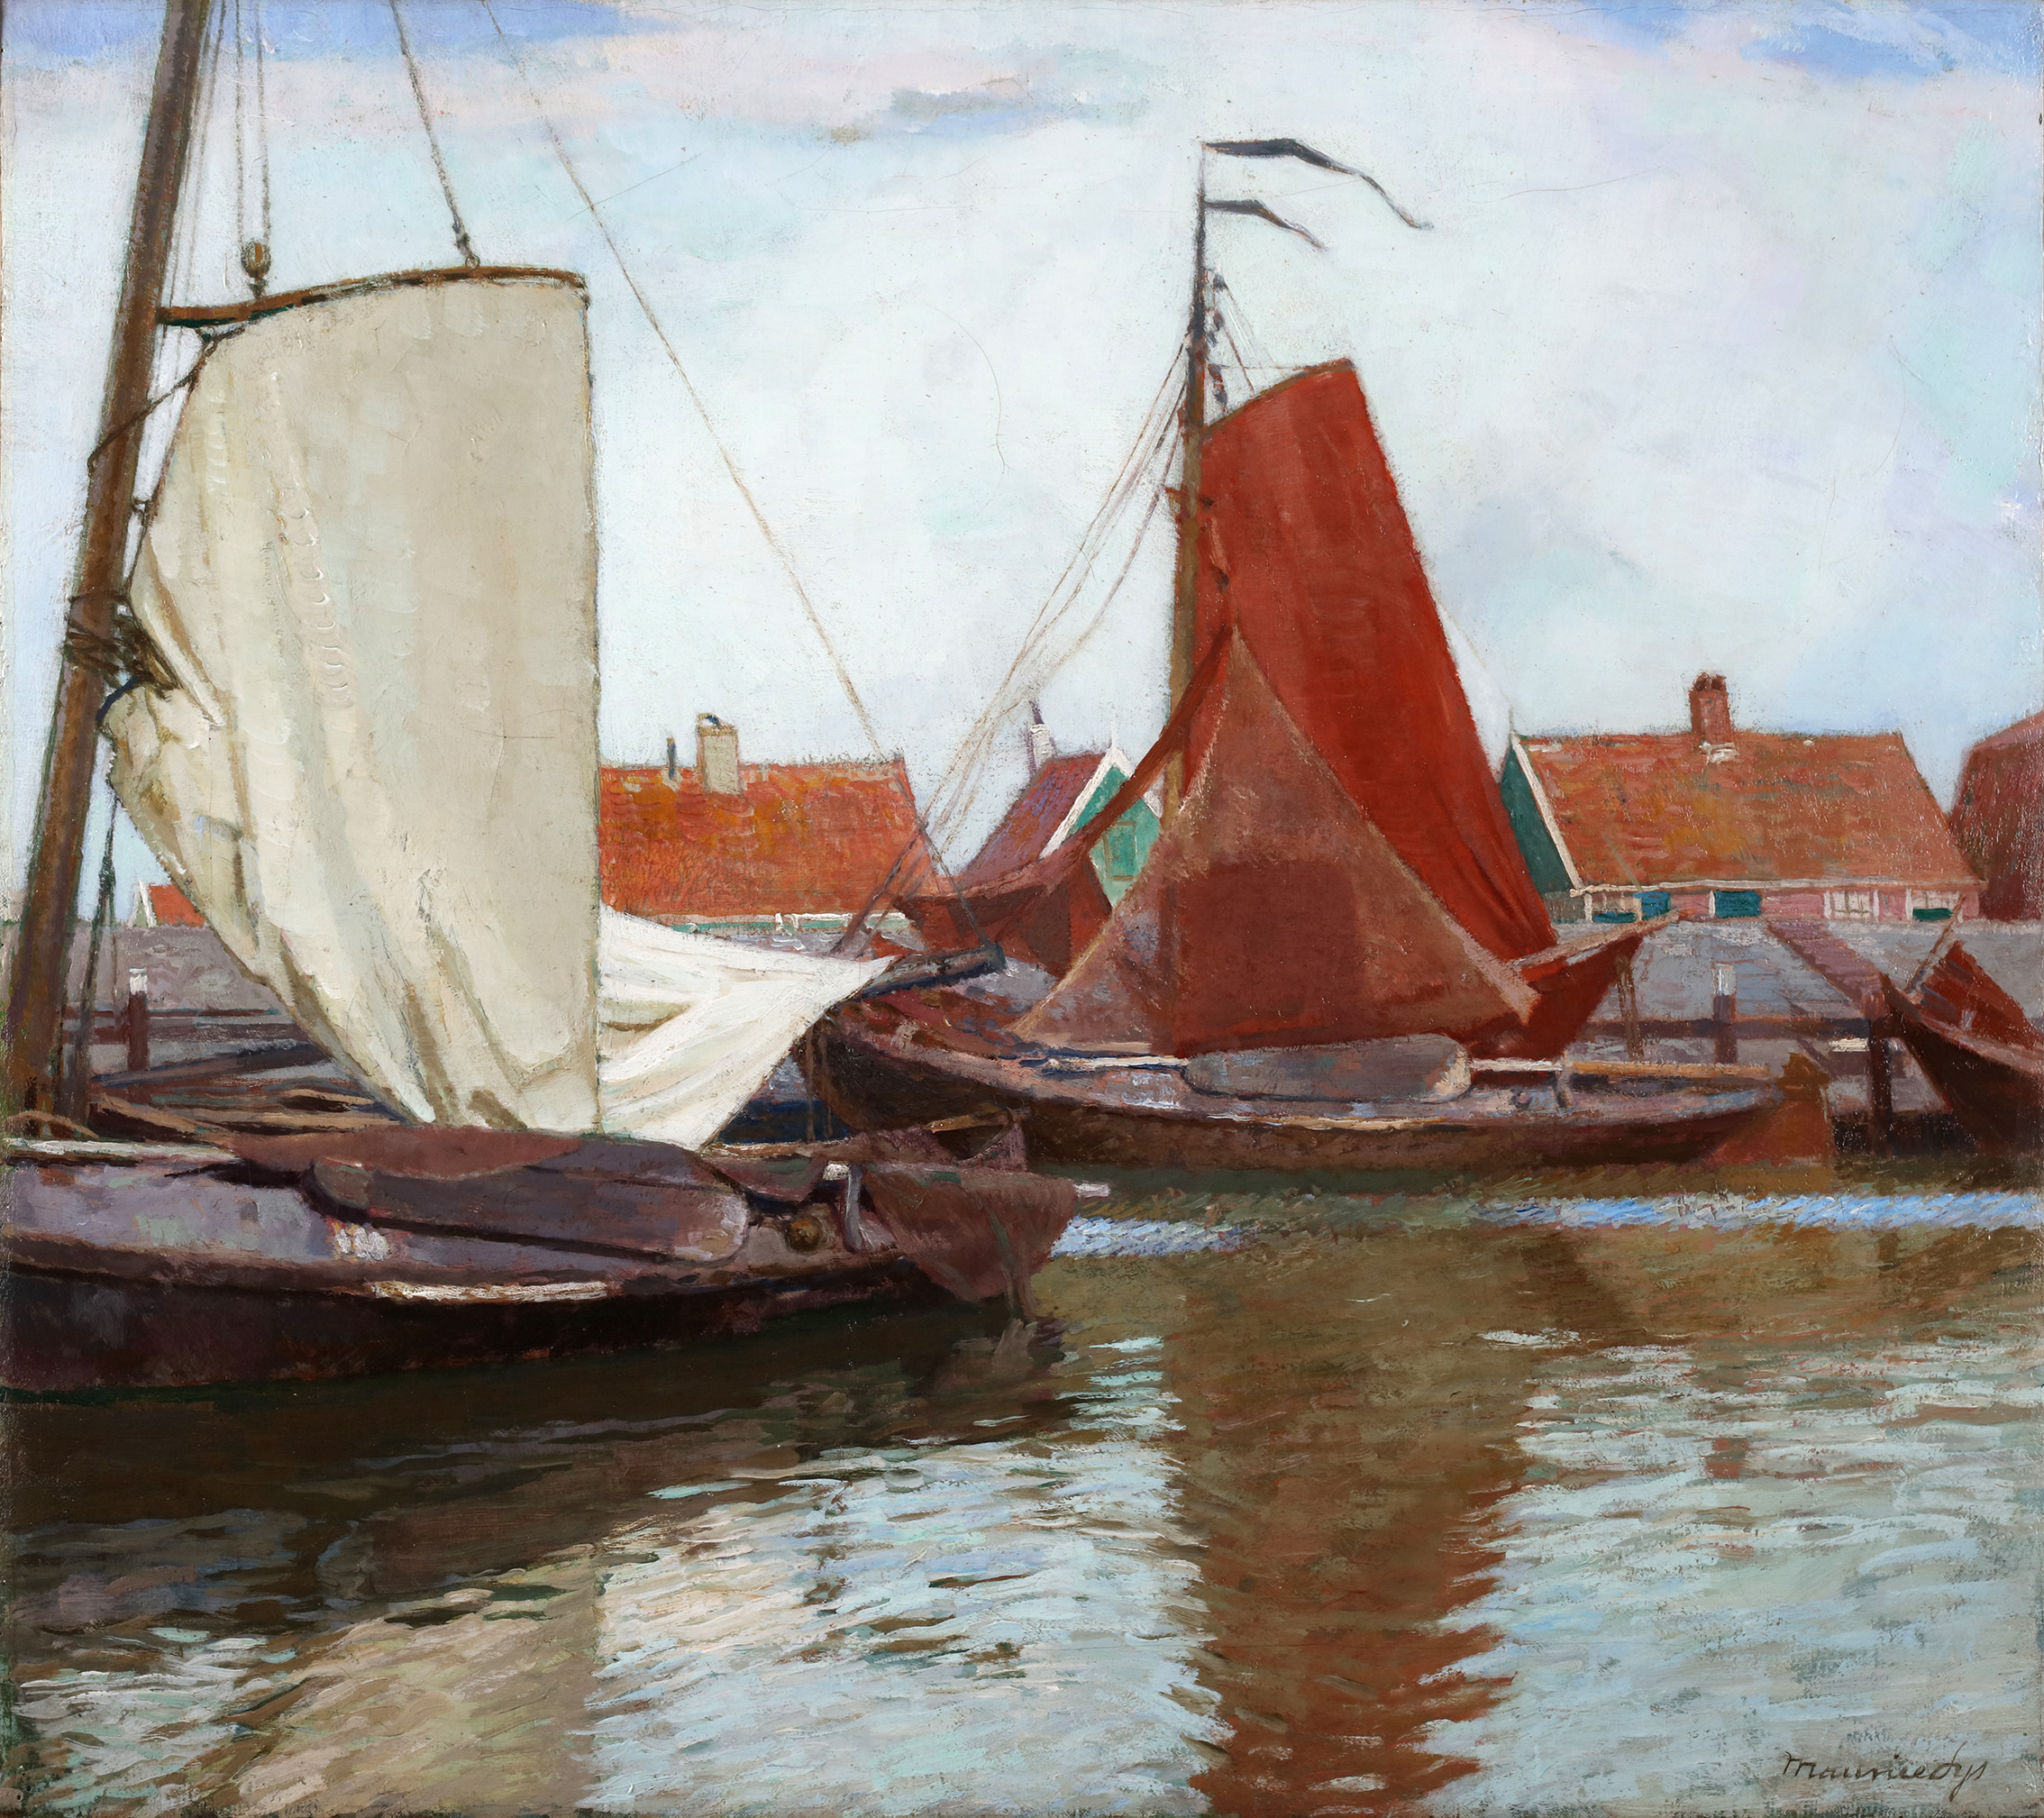 Boats in a Dutch harbour